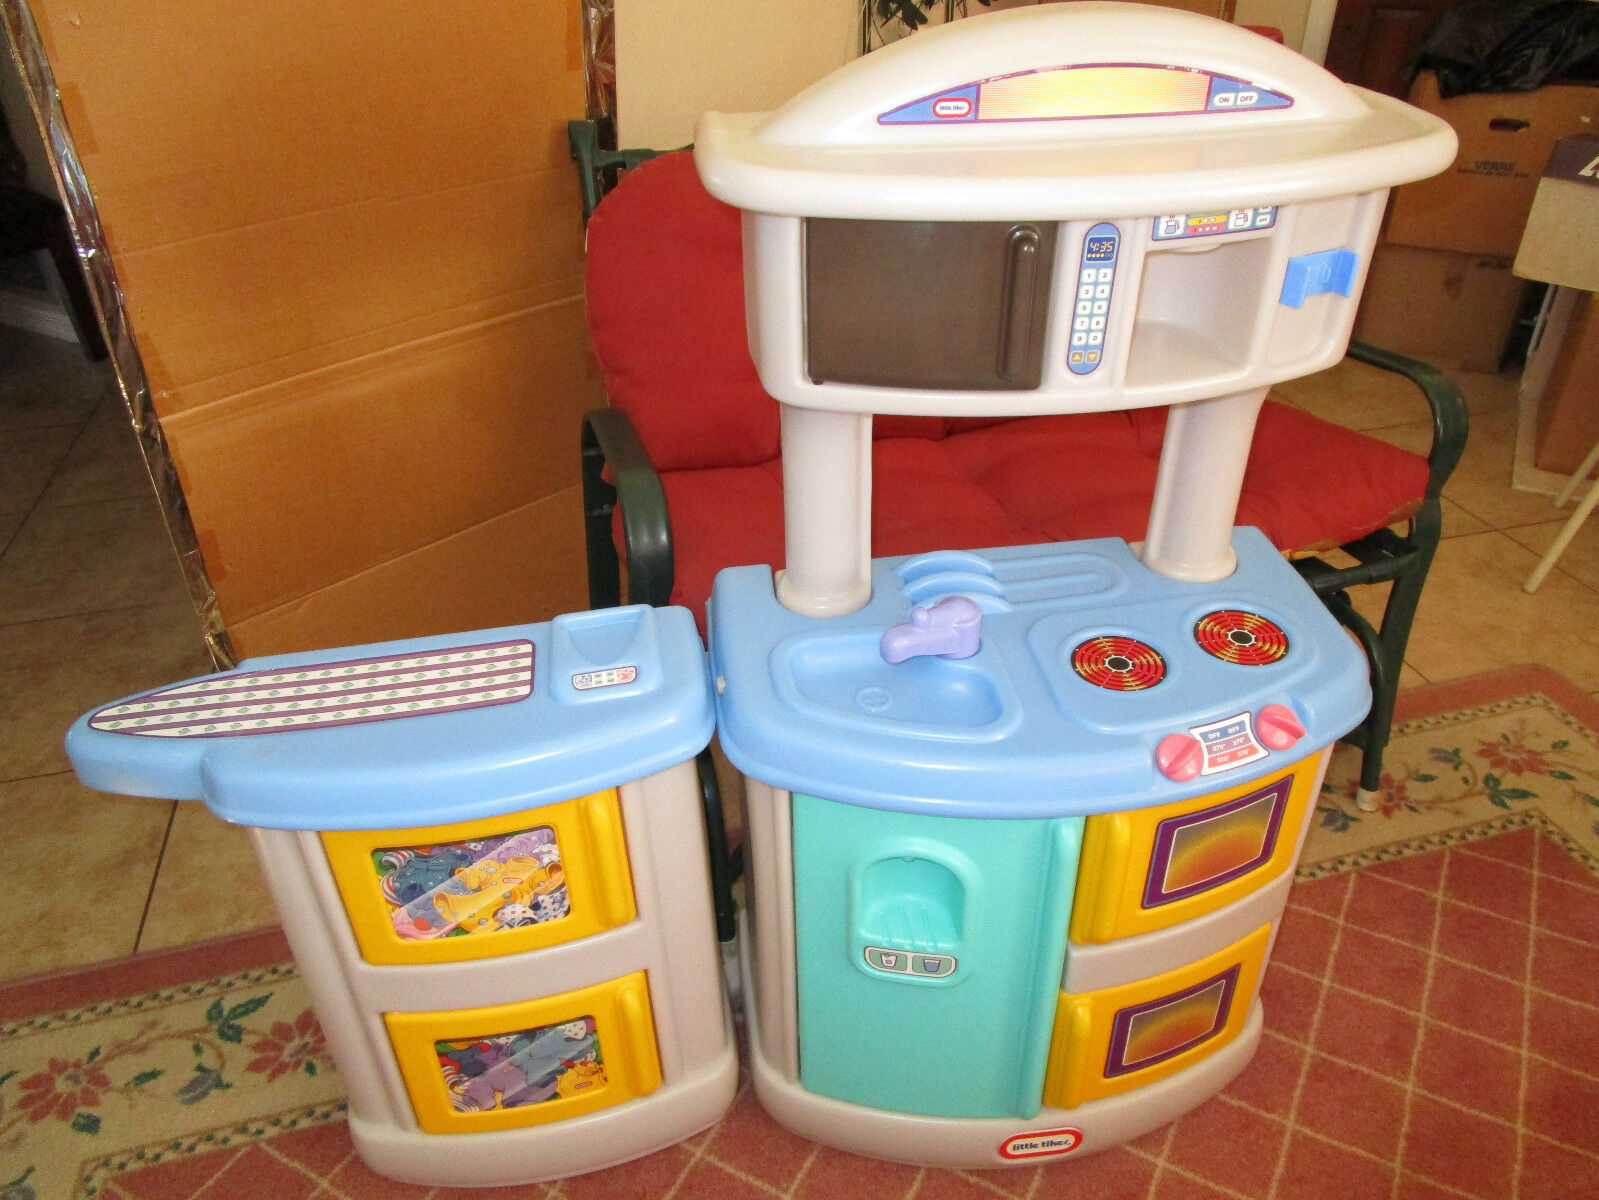 Little Tikes Play Kitchen: 1 listing